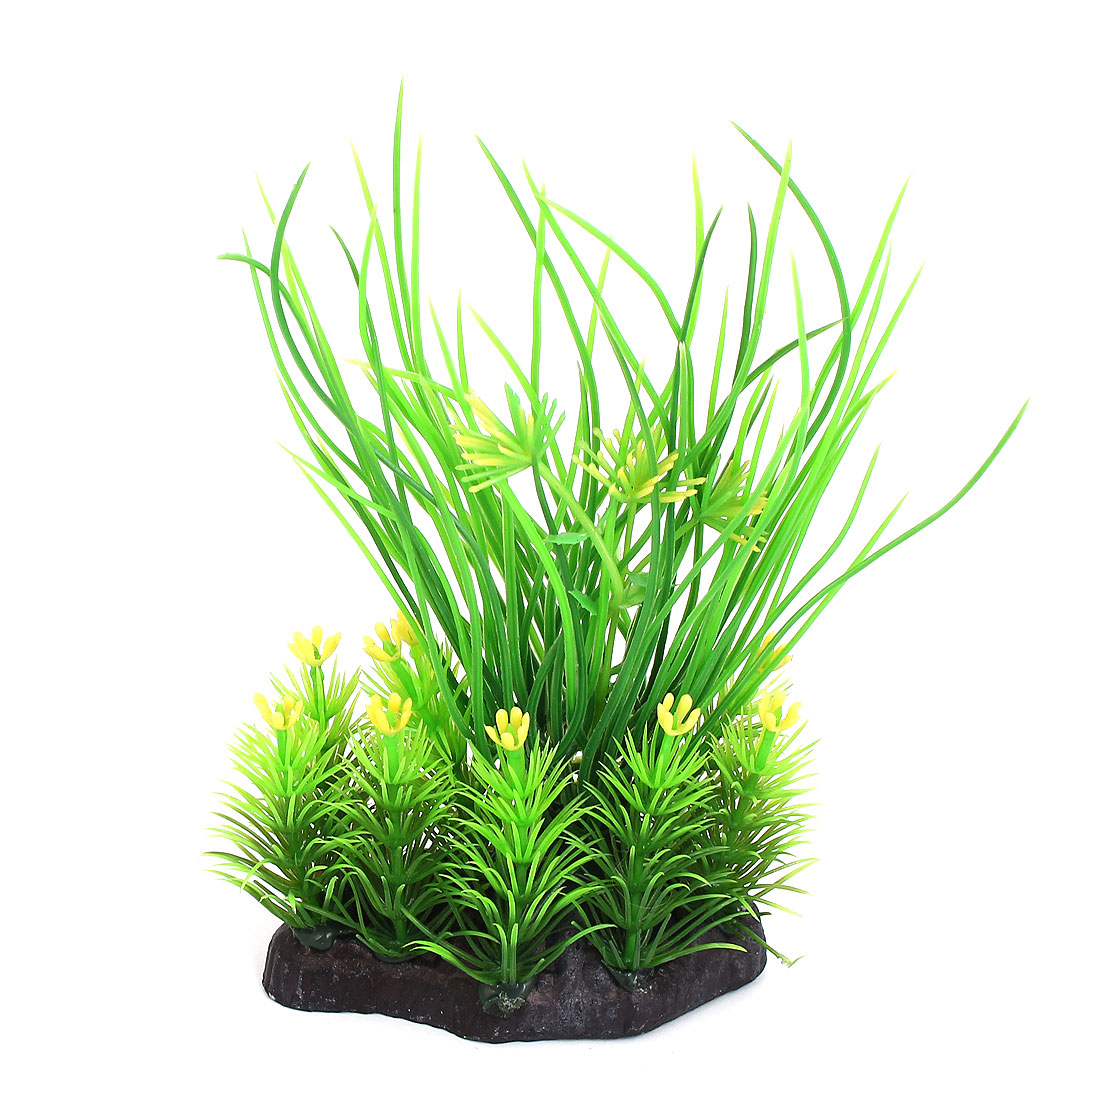 Aquarium Fish Tank Bowl Plastic Fake Water Plant Grass Decor Ornament Green